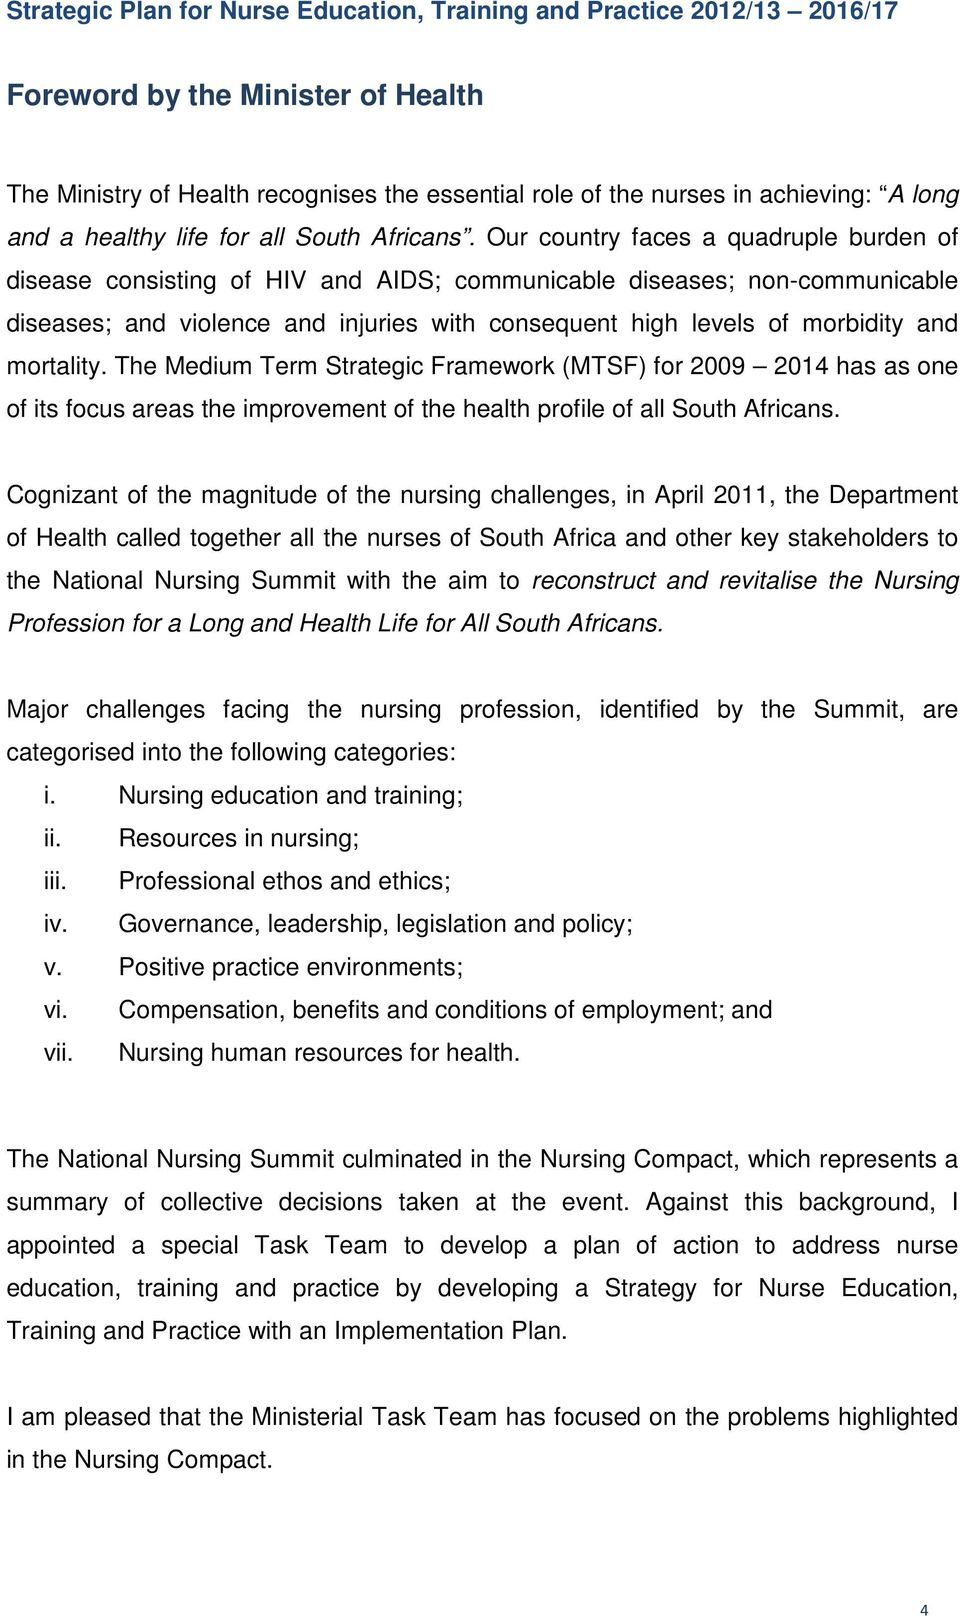 mortality. The Medium Term Strategic Framework (MTSF) for 2009 2014 has as one of its focus areas the improvement of the health profile of all South Africans.